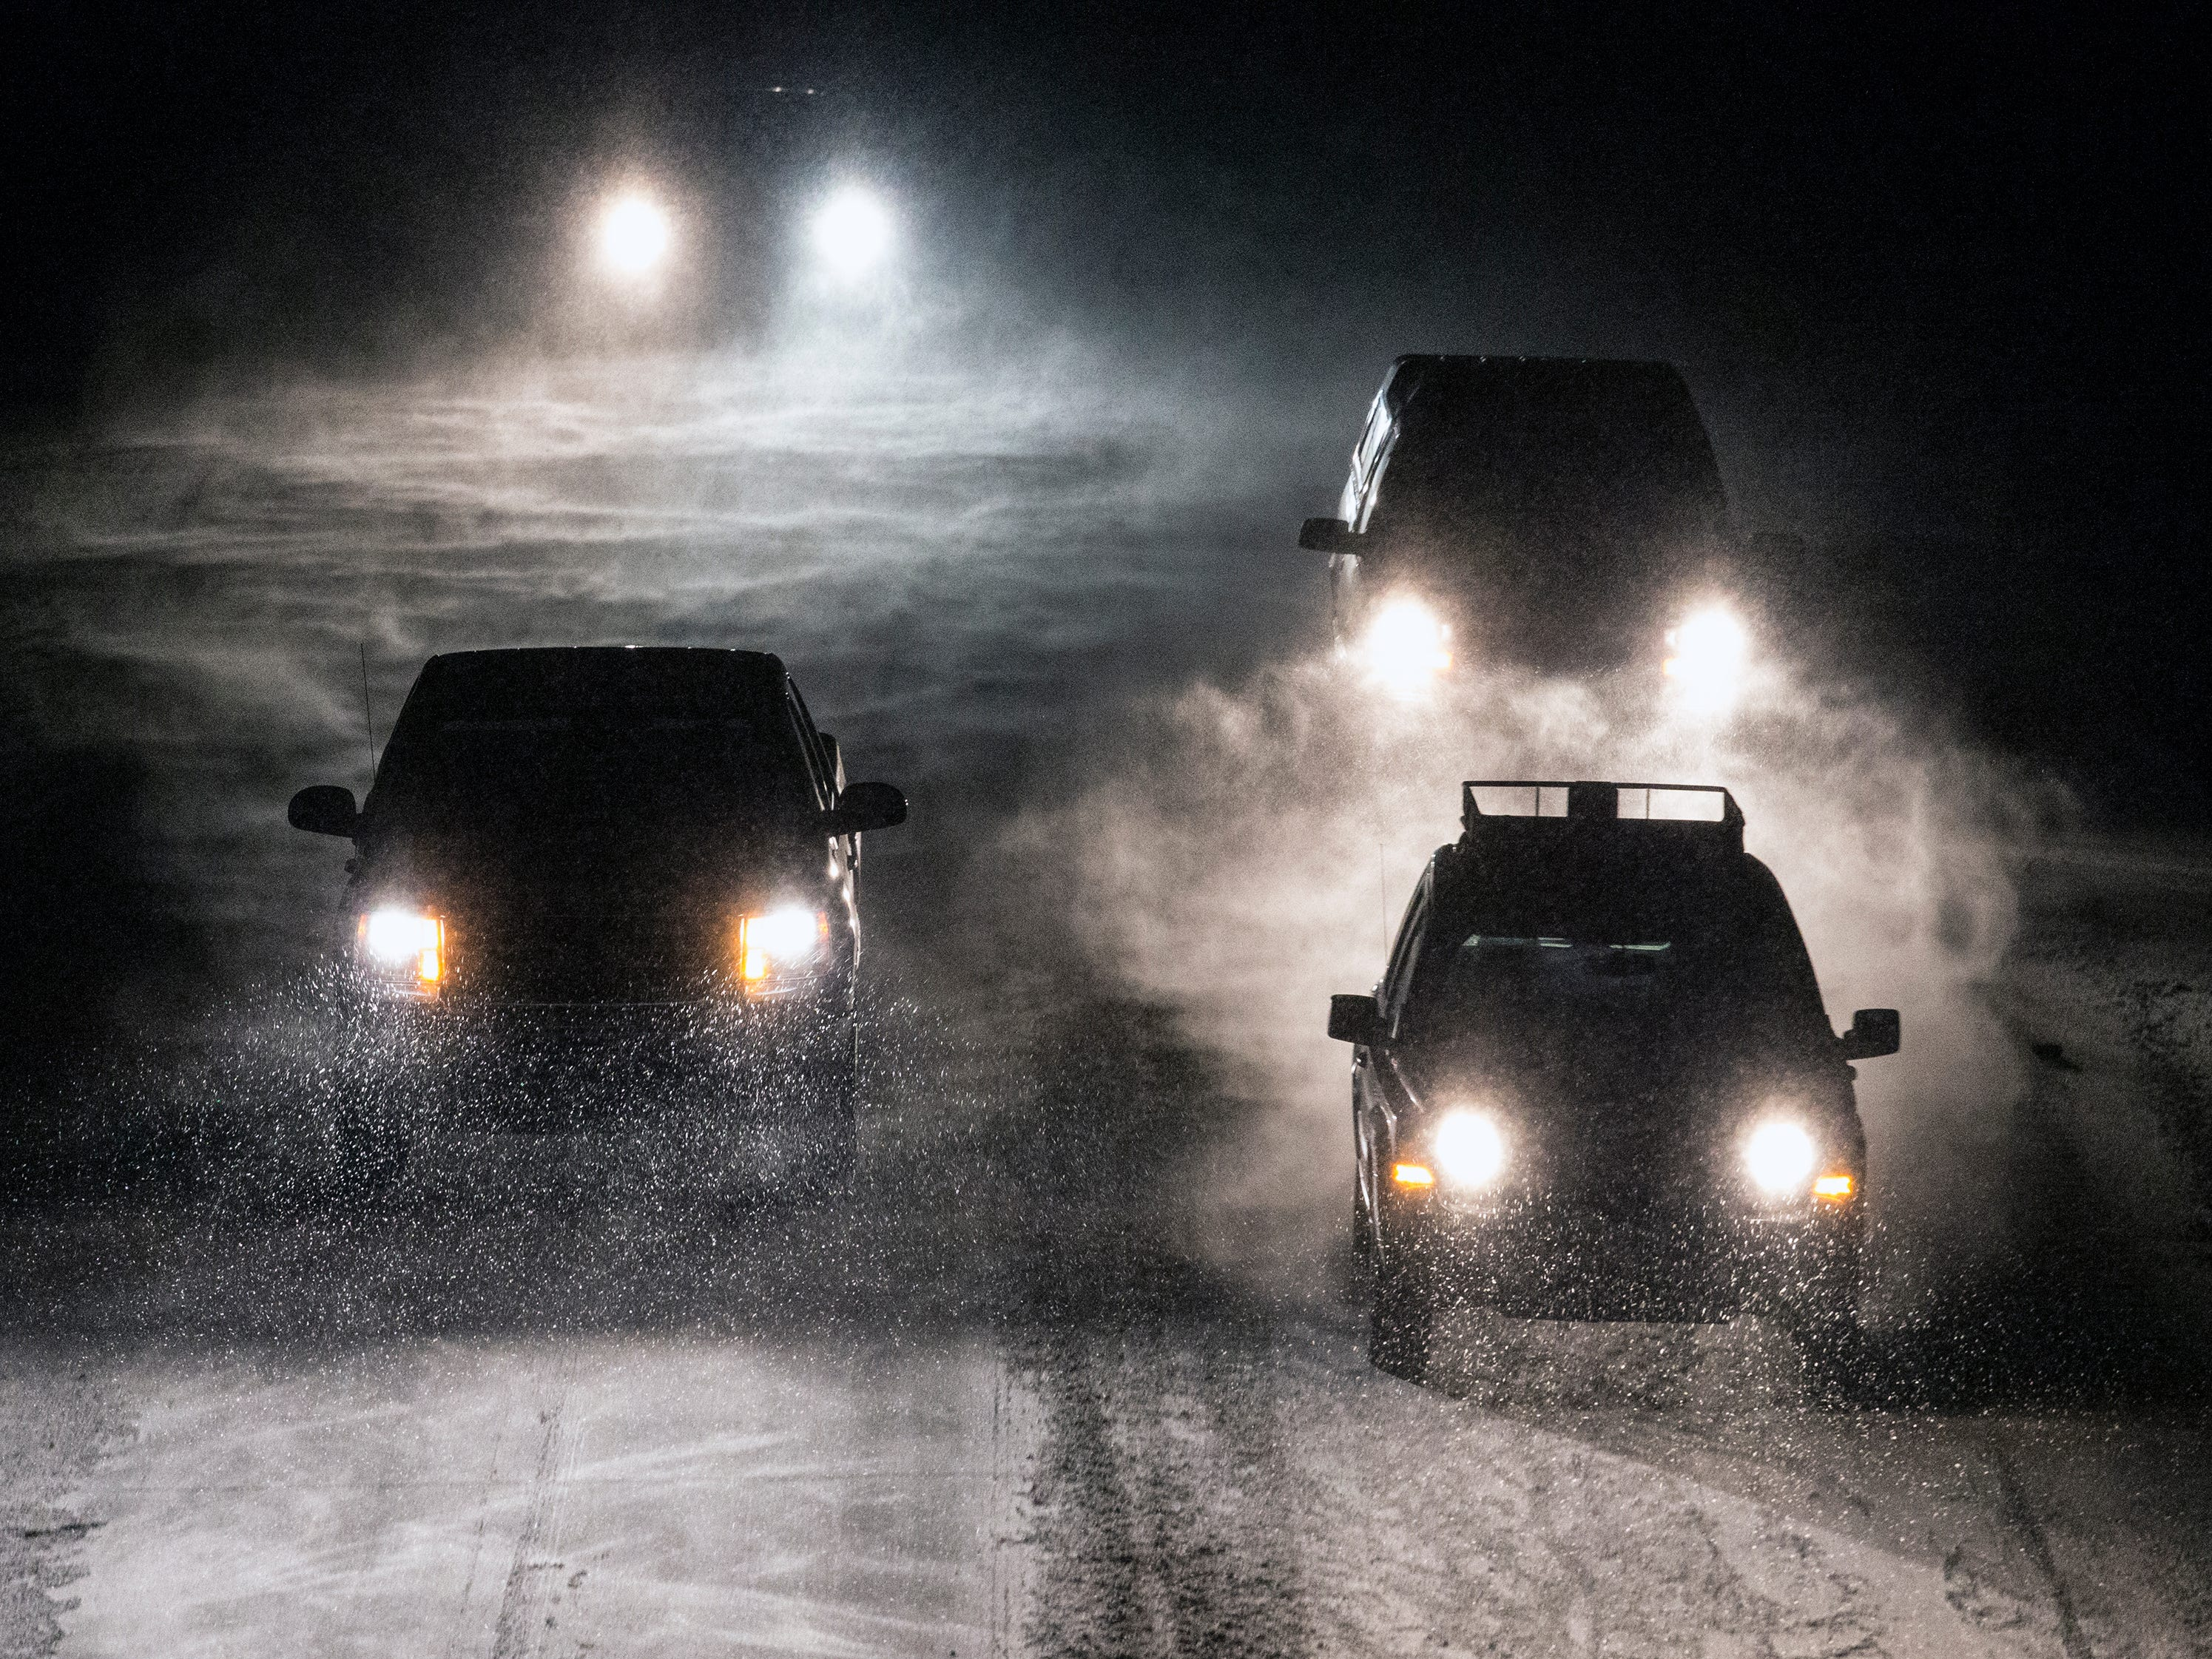 Cars travel south on I-43 as the first major snowstorm of winter starts to hit the area Tuesday, January 22, 2019, in Manitowoc, Wis. An accumulation of 5-7 inches is possible with some parts of Wisconsin predicted to get as much as 10 inches according to the National Weather Service. Joshua Clark/USA TODAY NETWORK-Wisconsin